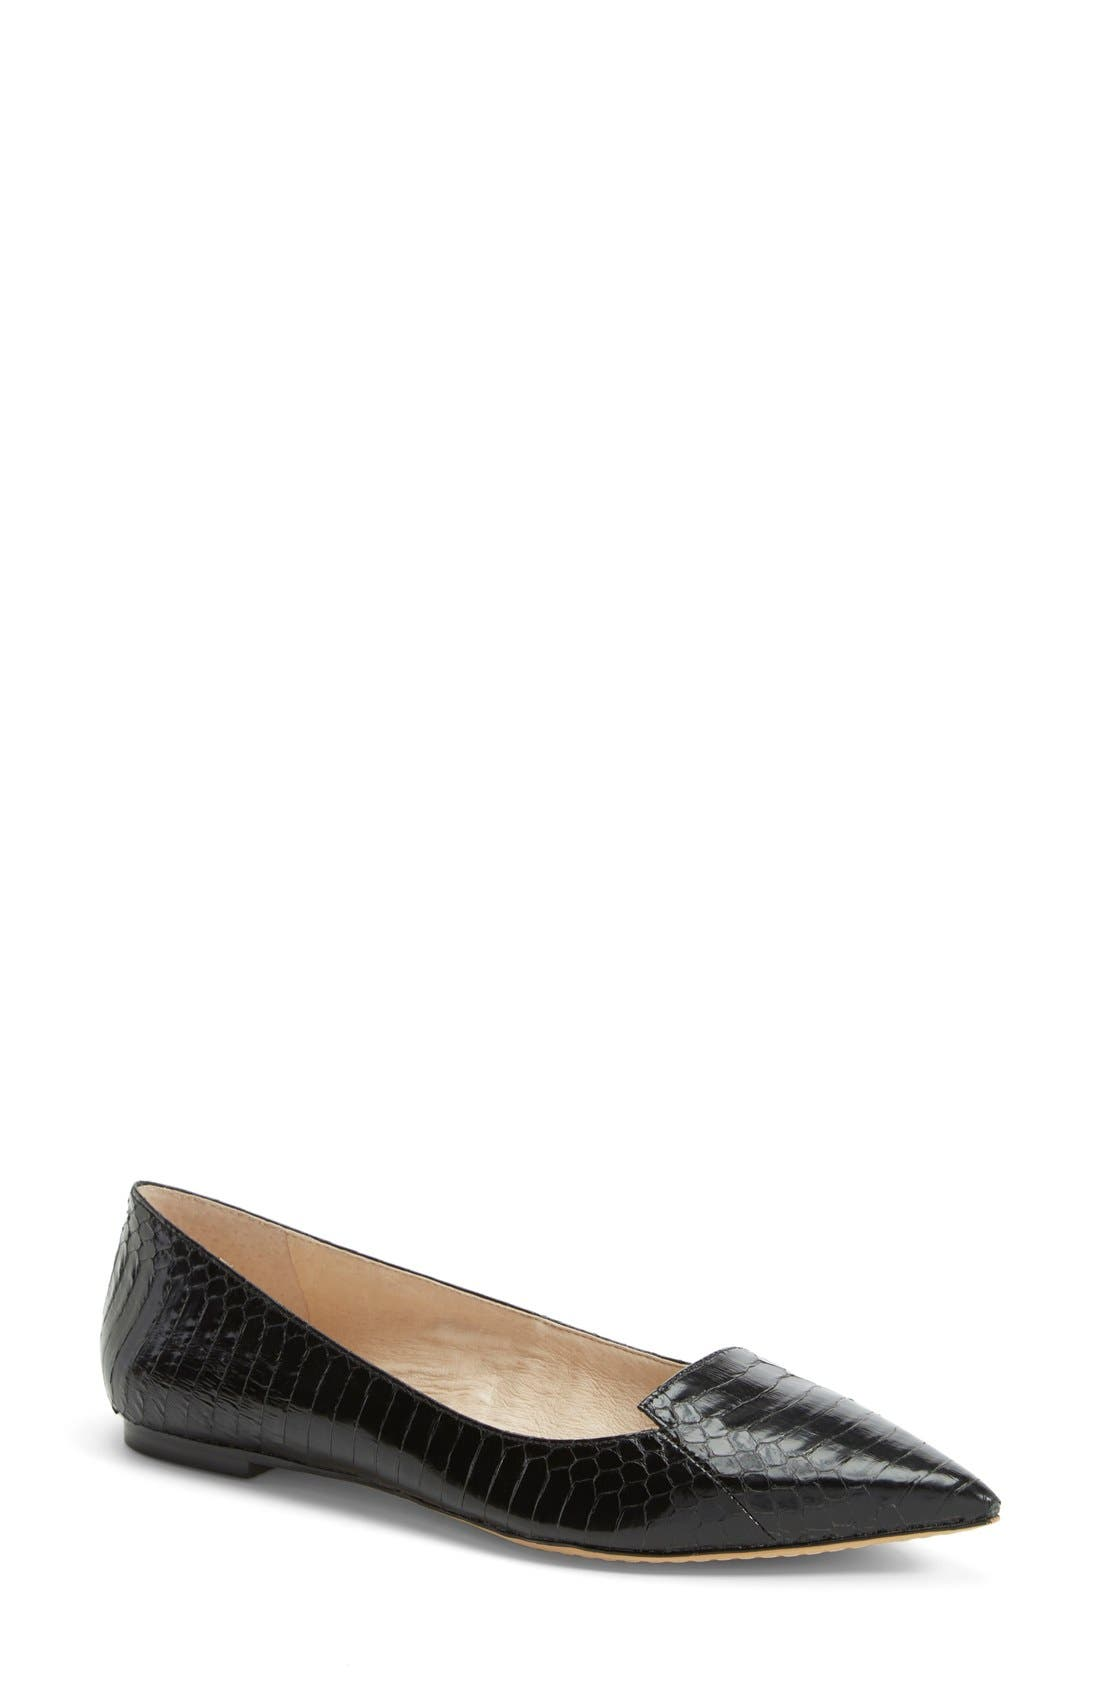 VINCE CAMUTO, 'Empa' Pointy Toe Loafer Flat, Main thumbnail 1, color, 001